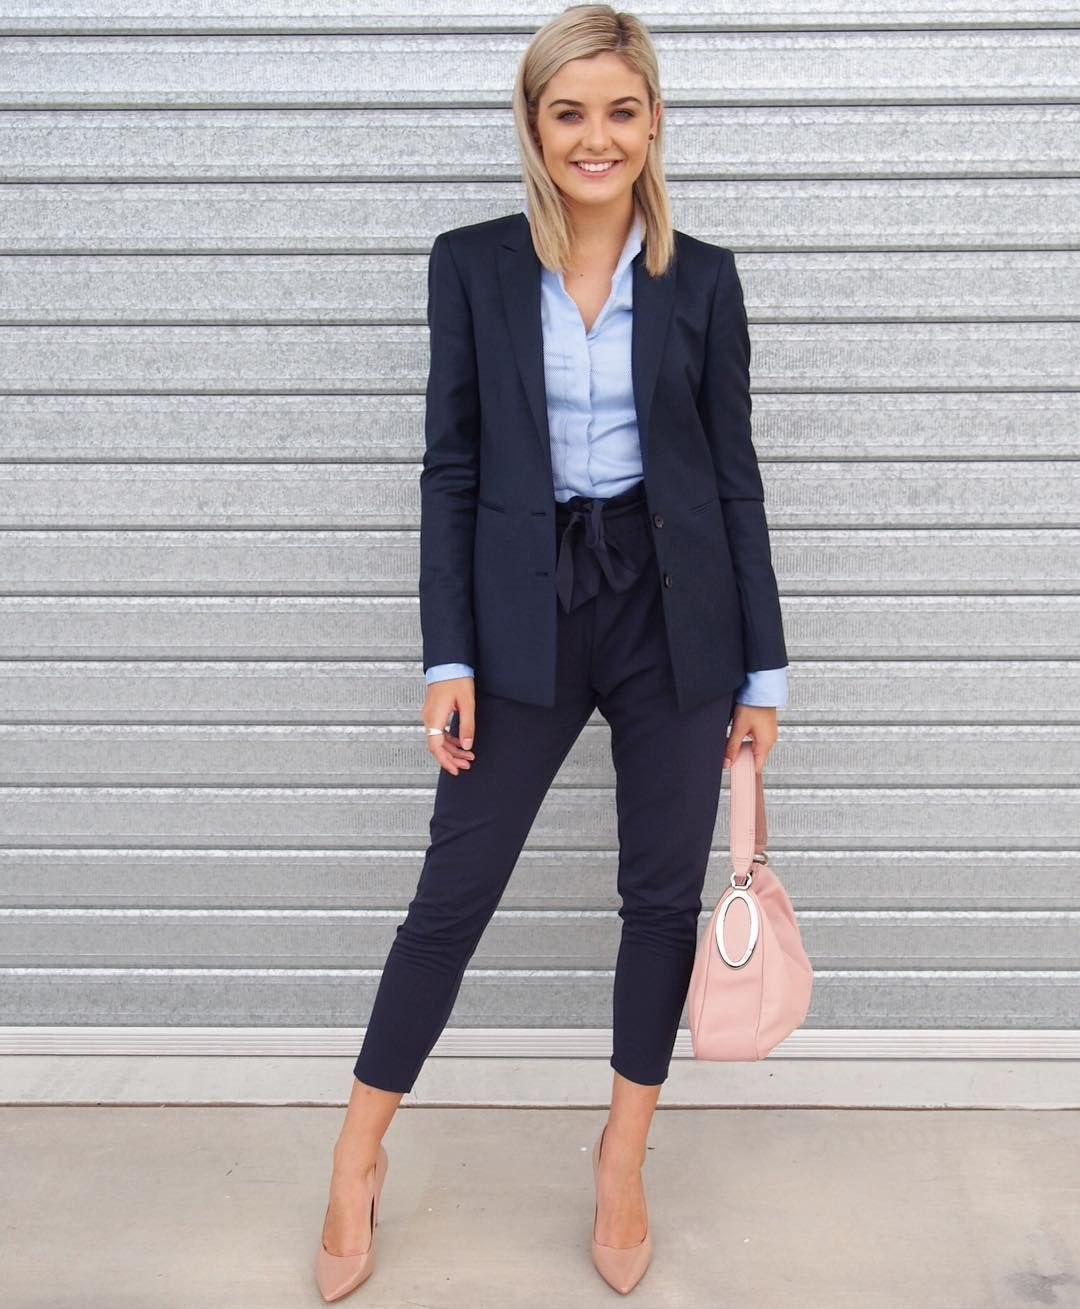 f32ec202fe Pin by JG People on Workwear and Job Interview Outfits in 2019 ...